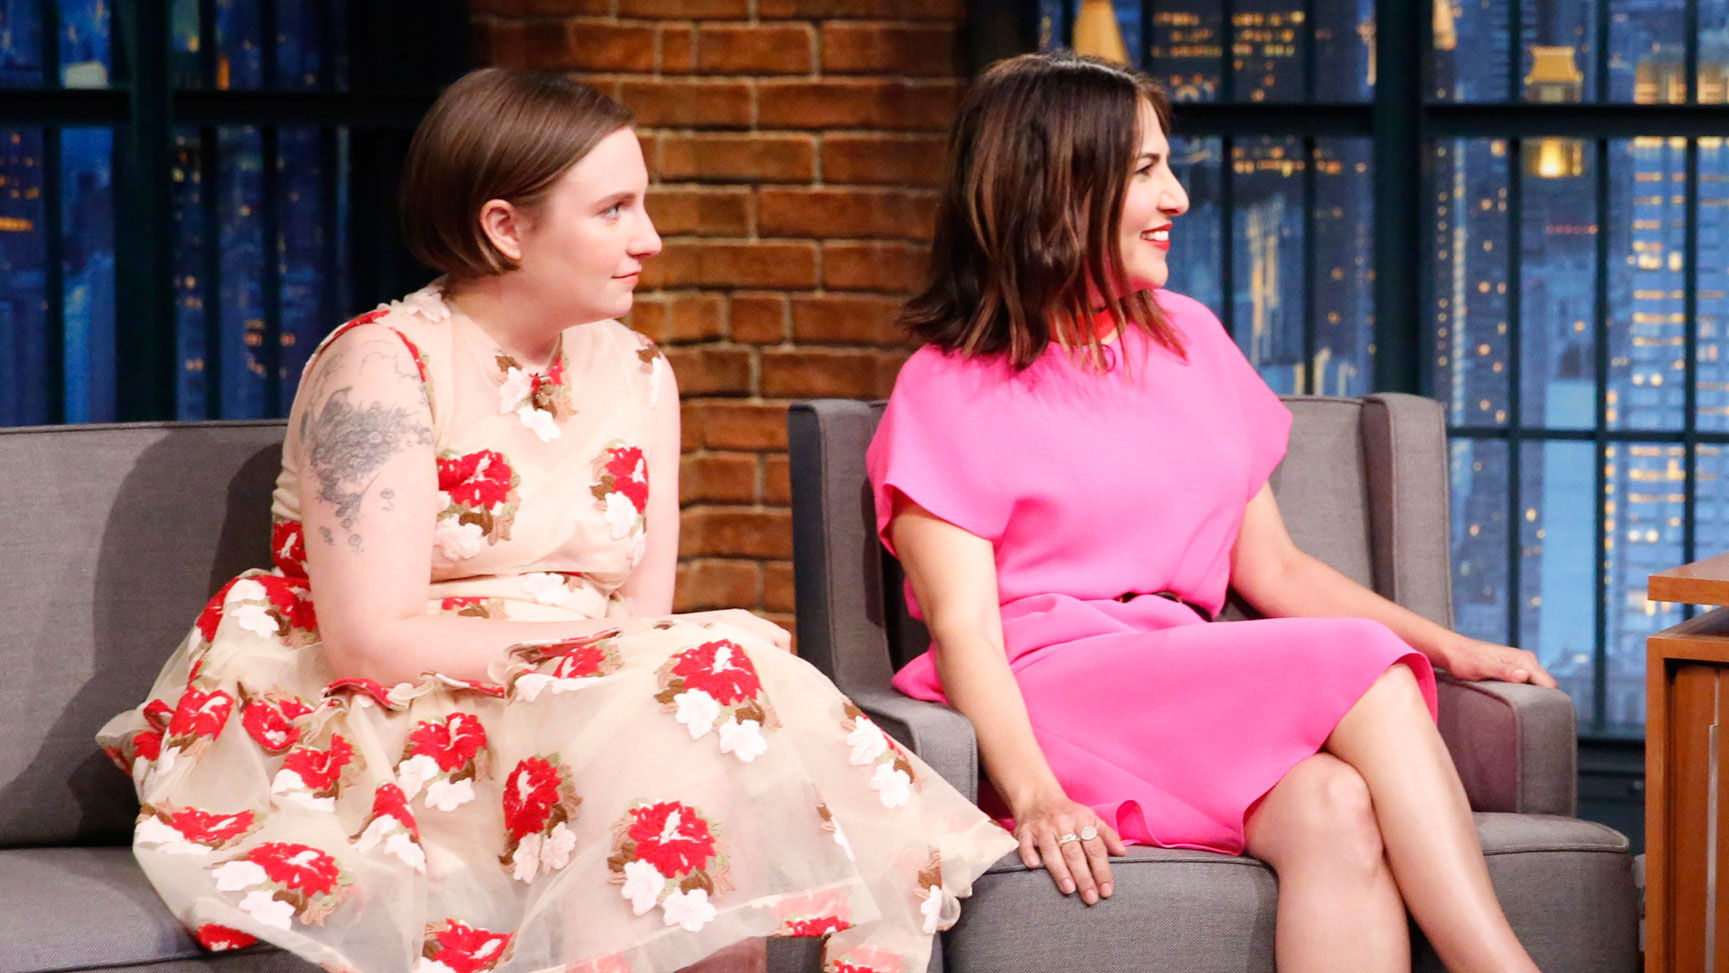 Lena Dunham and Jenni Konner Love the Kardashians